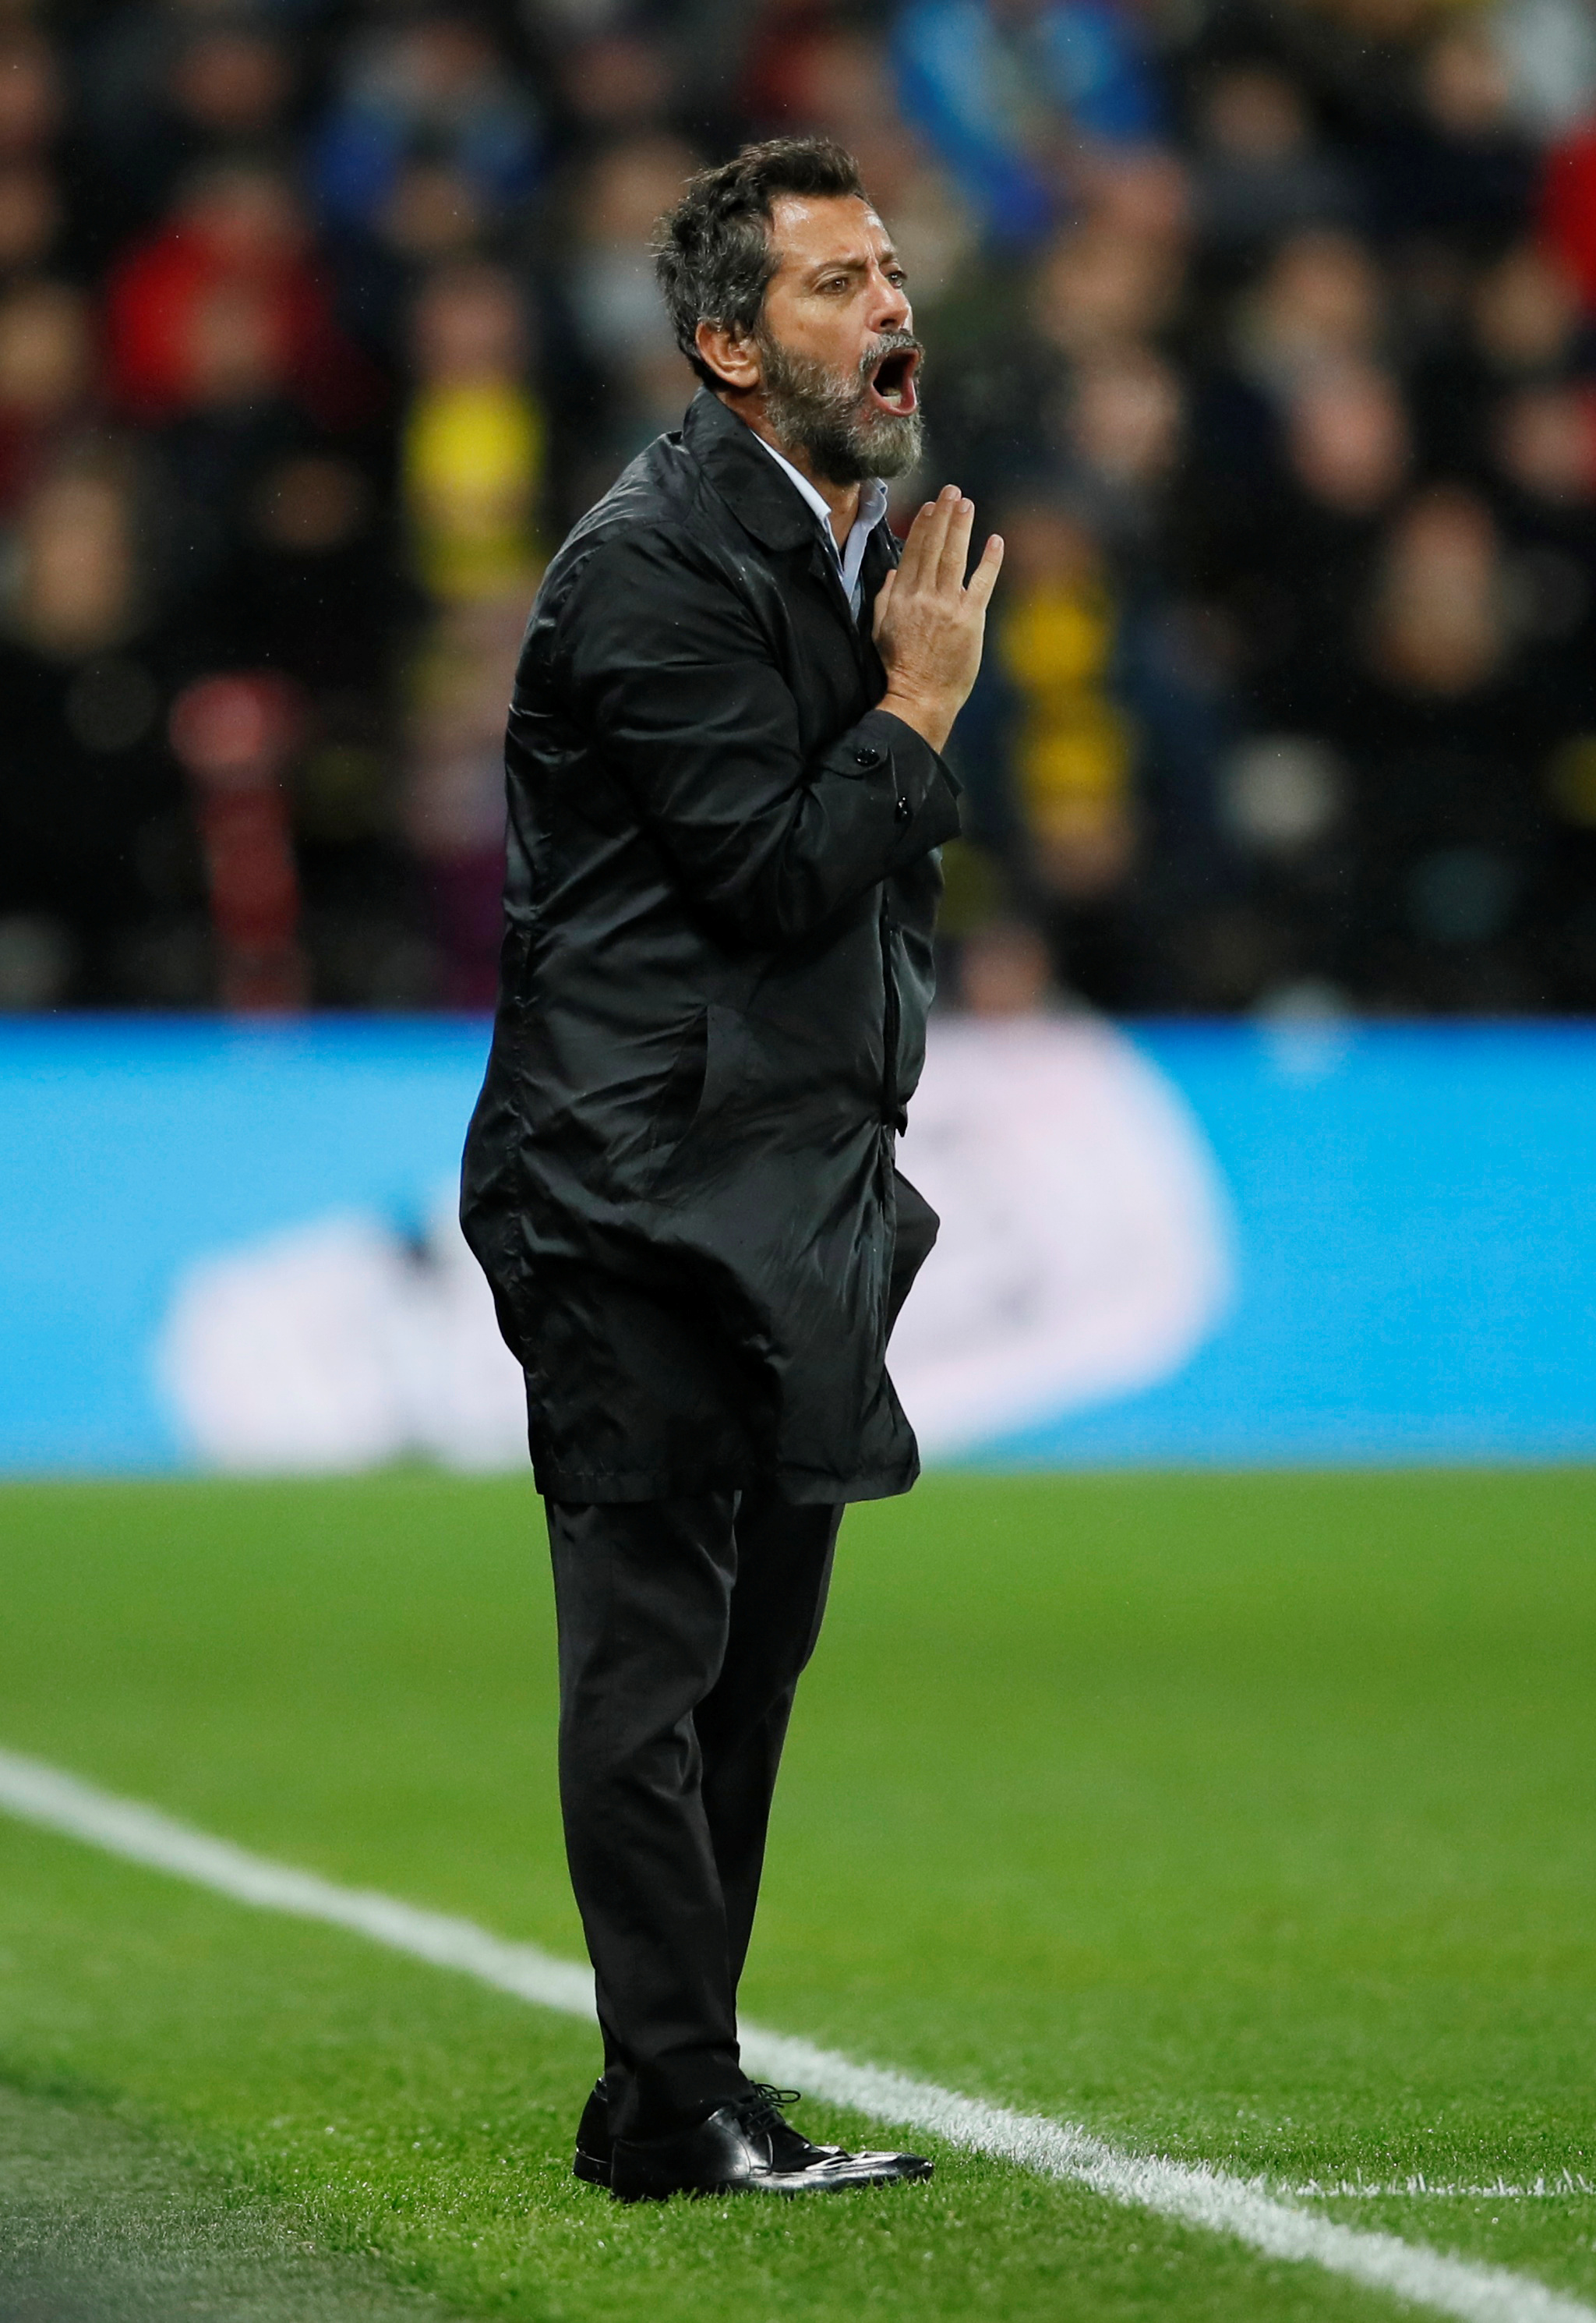 Watford head coach responds to fans' booing during Chelsea defeat